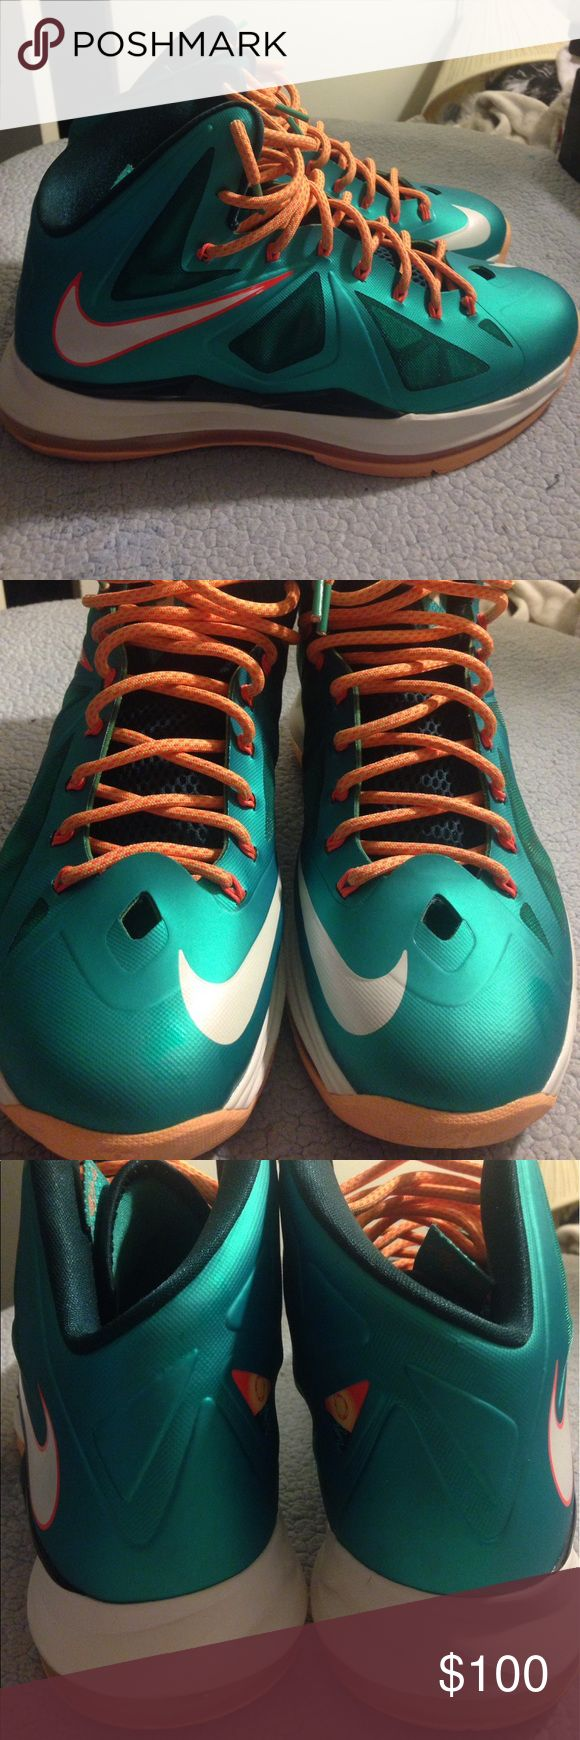 Lebron 10 Dolphin Editions Mint Condition Rarely Worn Plus They Are 4 Years Old Nike Shoes Sneakers